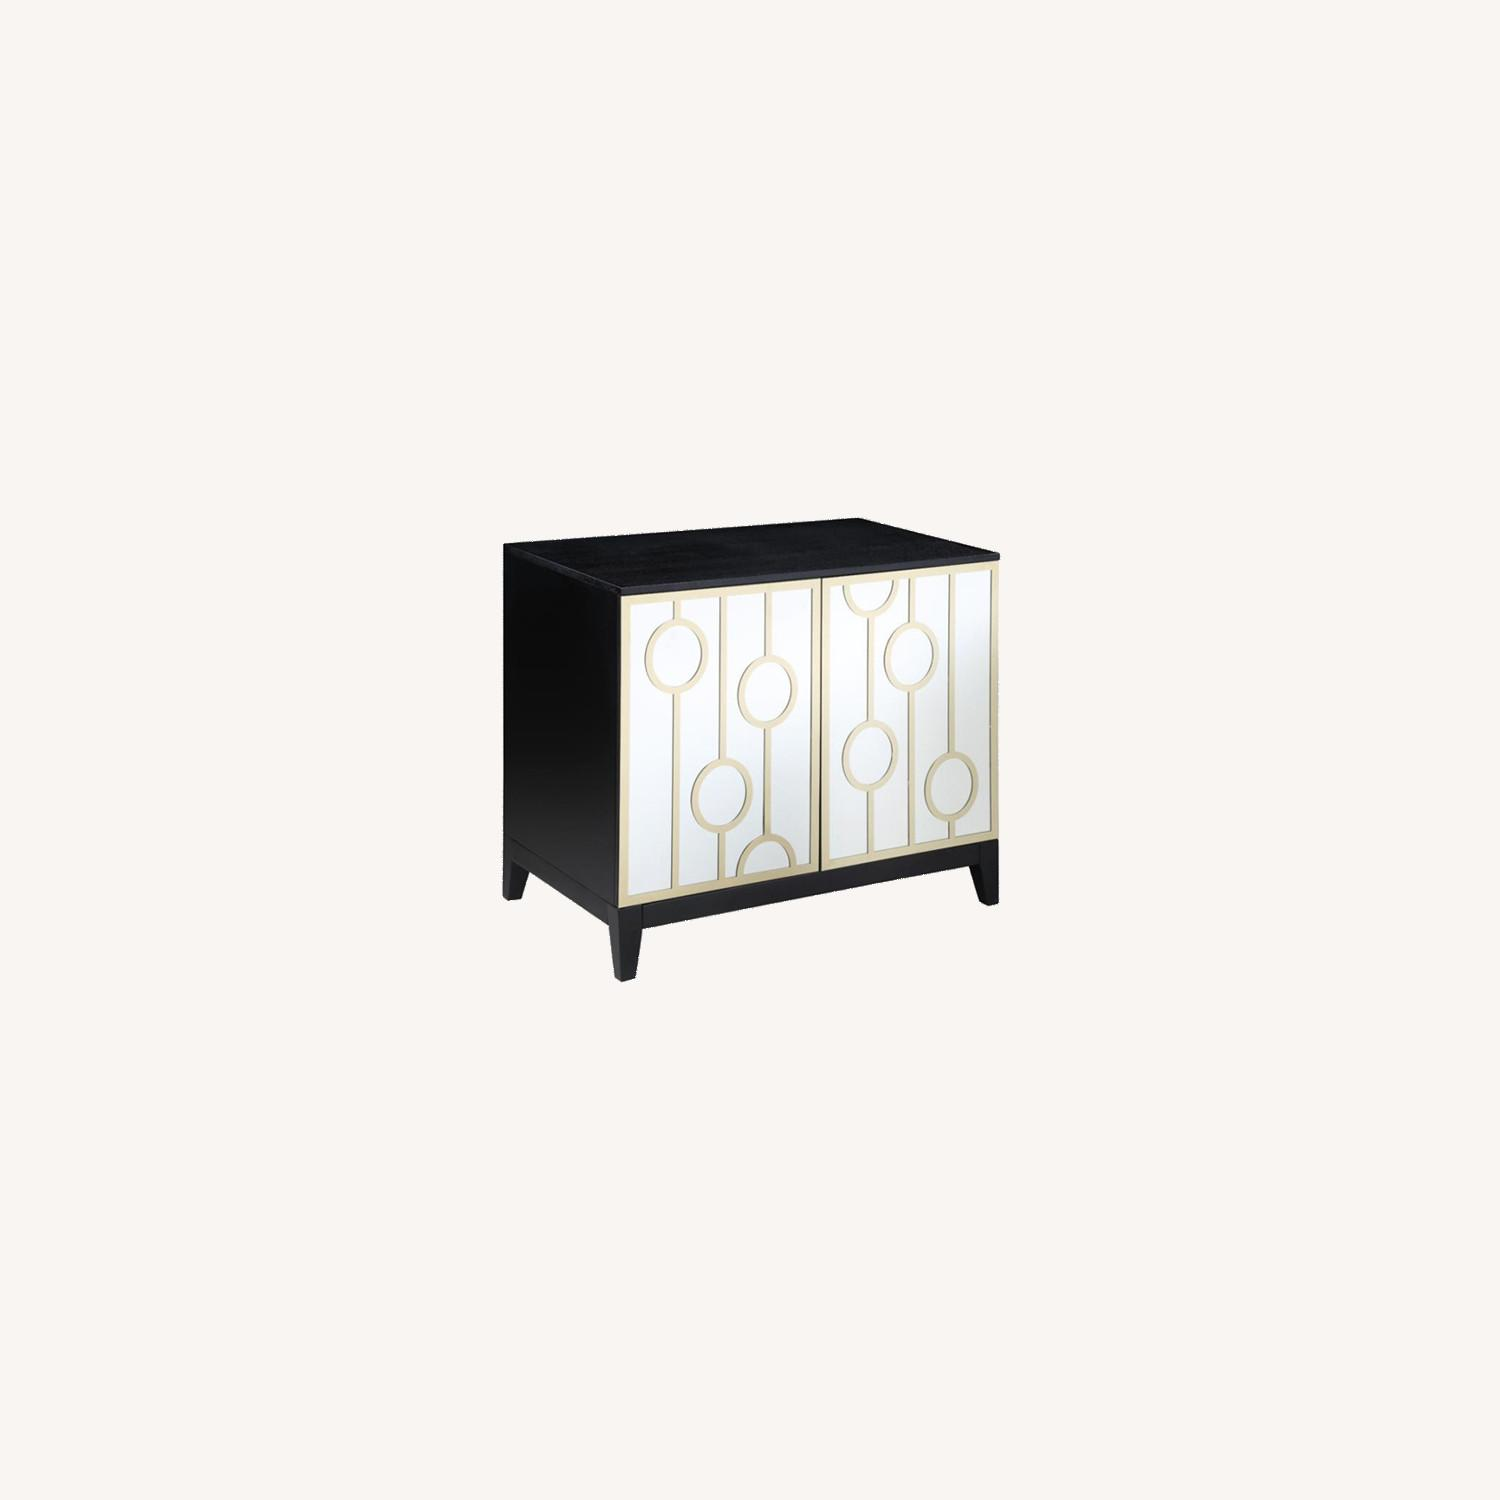 Server W Decorative Mirrored Fronts & Gold Rings - image-5